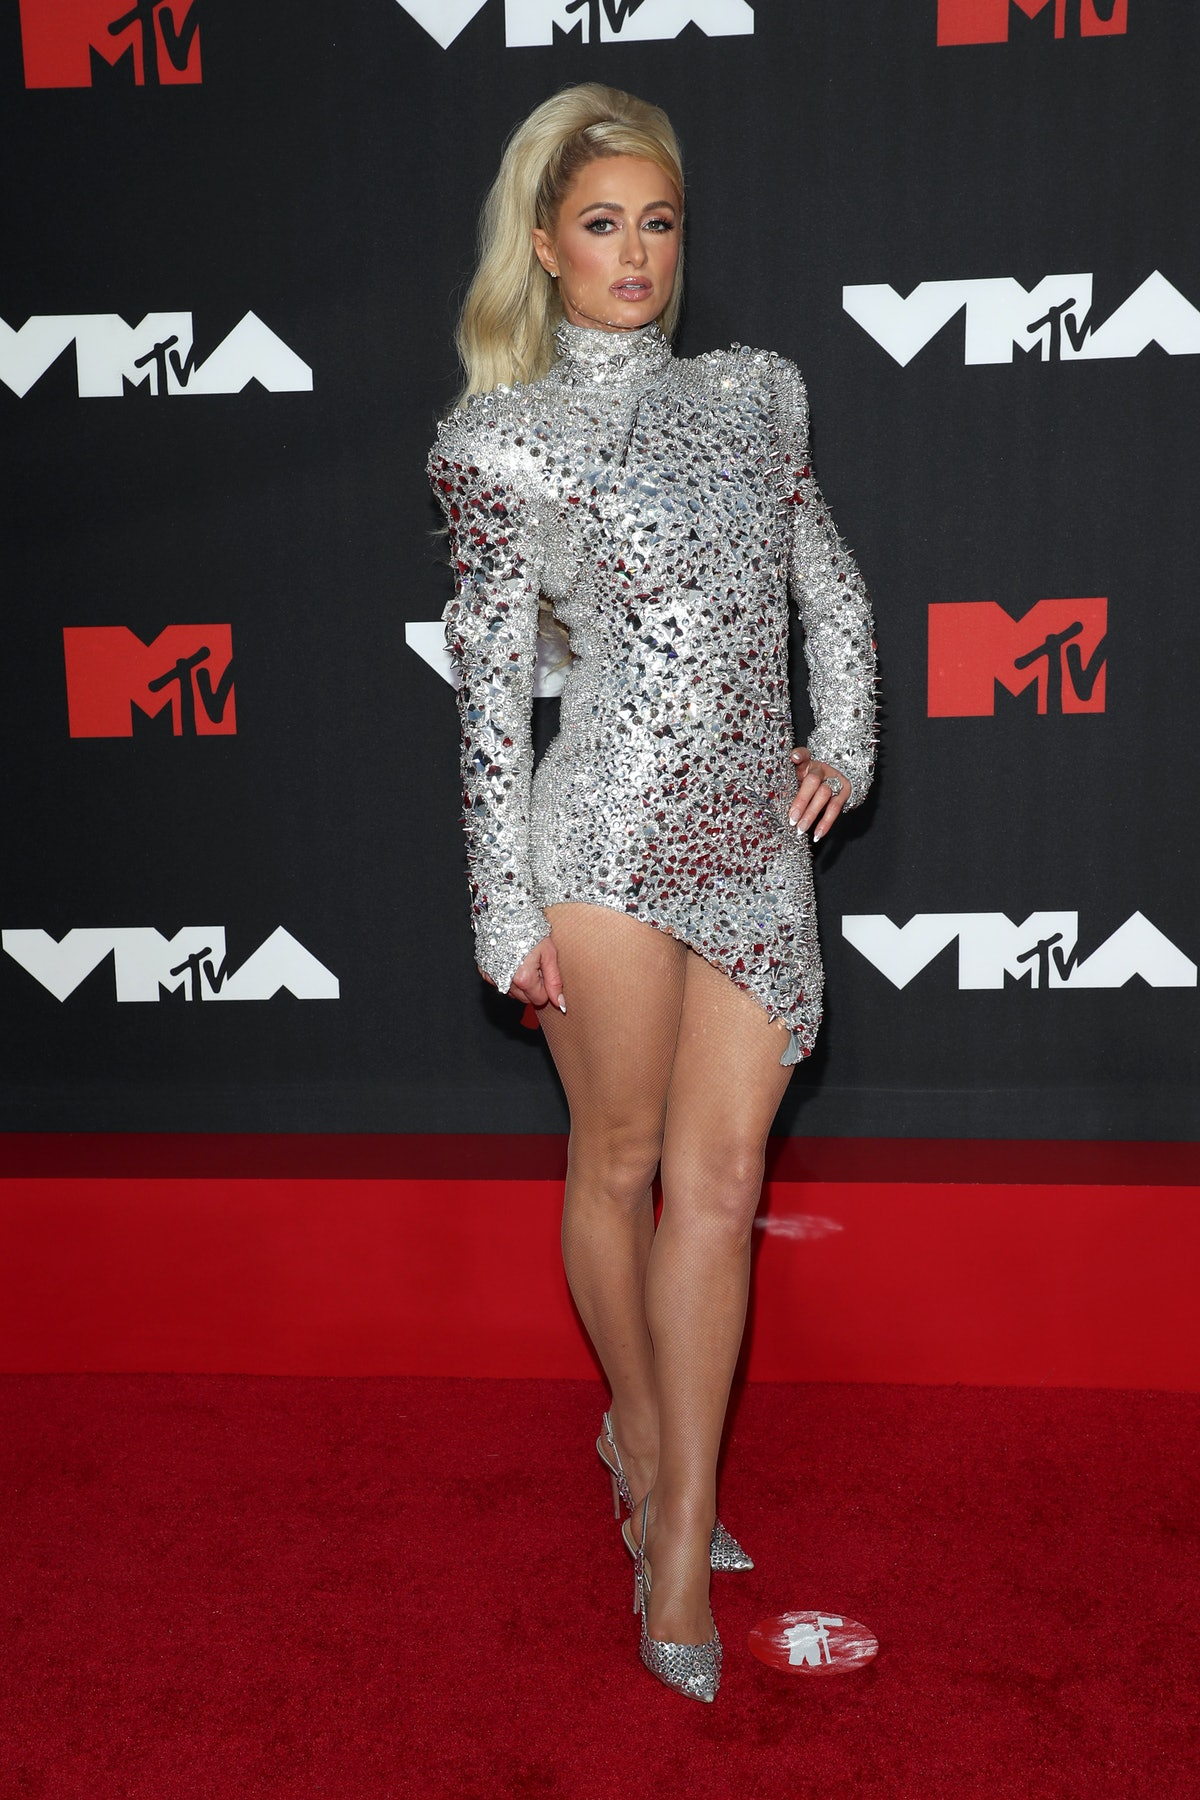 Paris Hilton attends the 2021 MTV Video Music Awards at Barclays Center on September 12, 2021 in the...